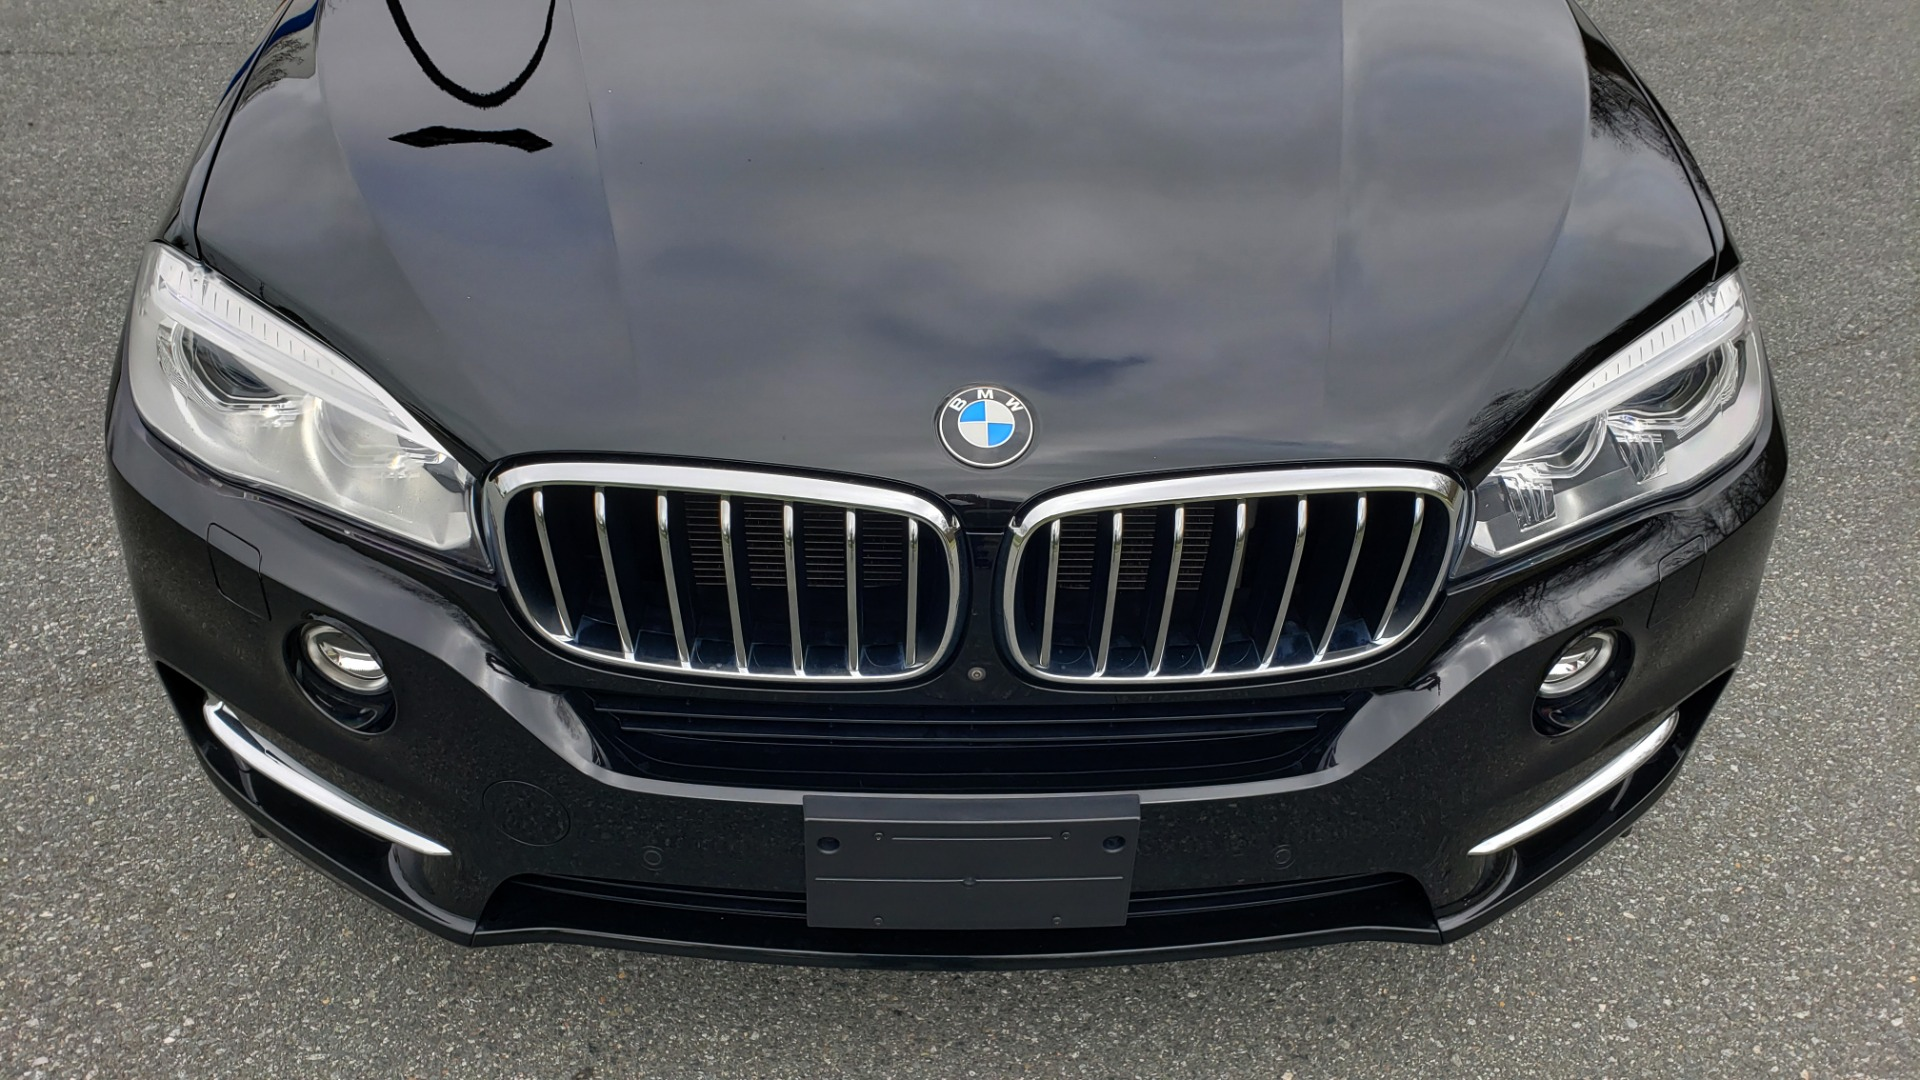 Used 2017 BMW X5 XDRIVE35I / PREM LUX PKG / DRVR ASST / CLD WTHR / APPLE CAR PLAY for sale Sold at Formula Imports in Charlotte NC 28227 15